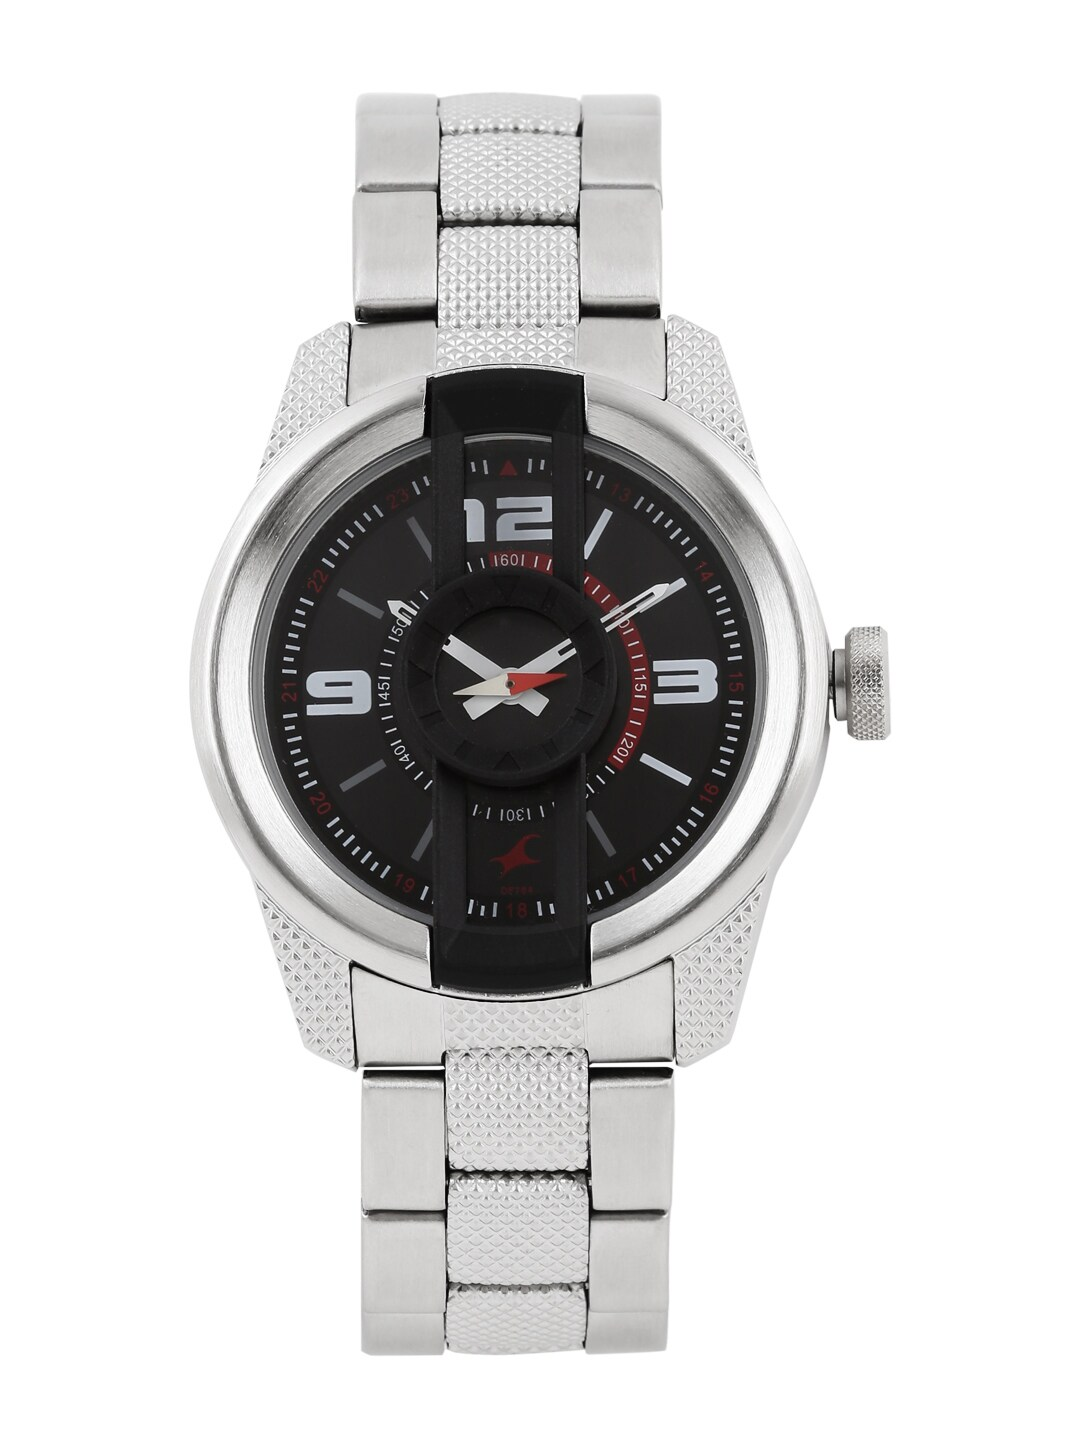 8c4075c9f12c Fastrack - Shop Online from Fastrack Store